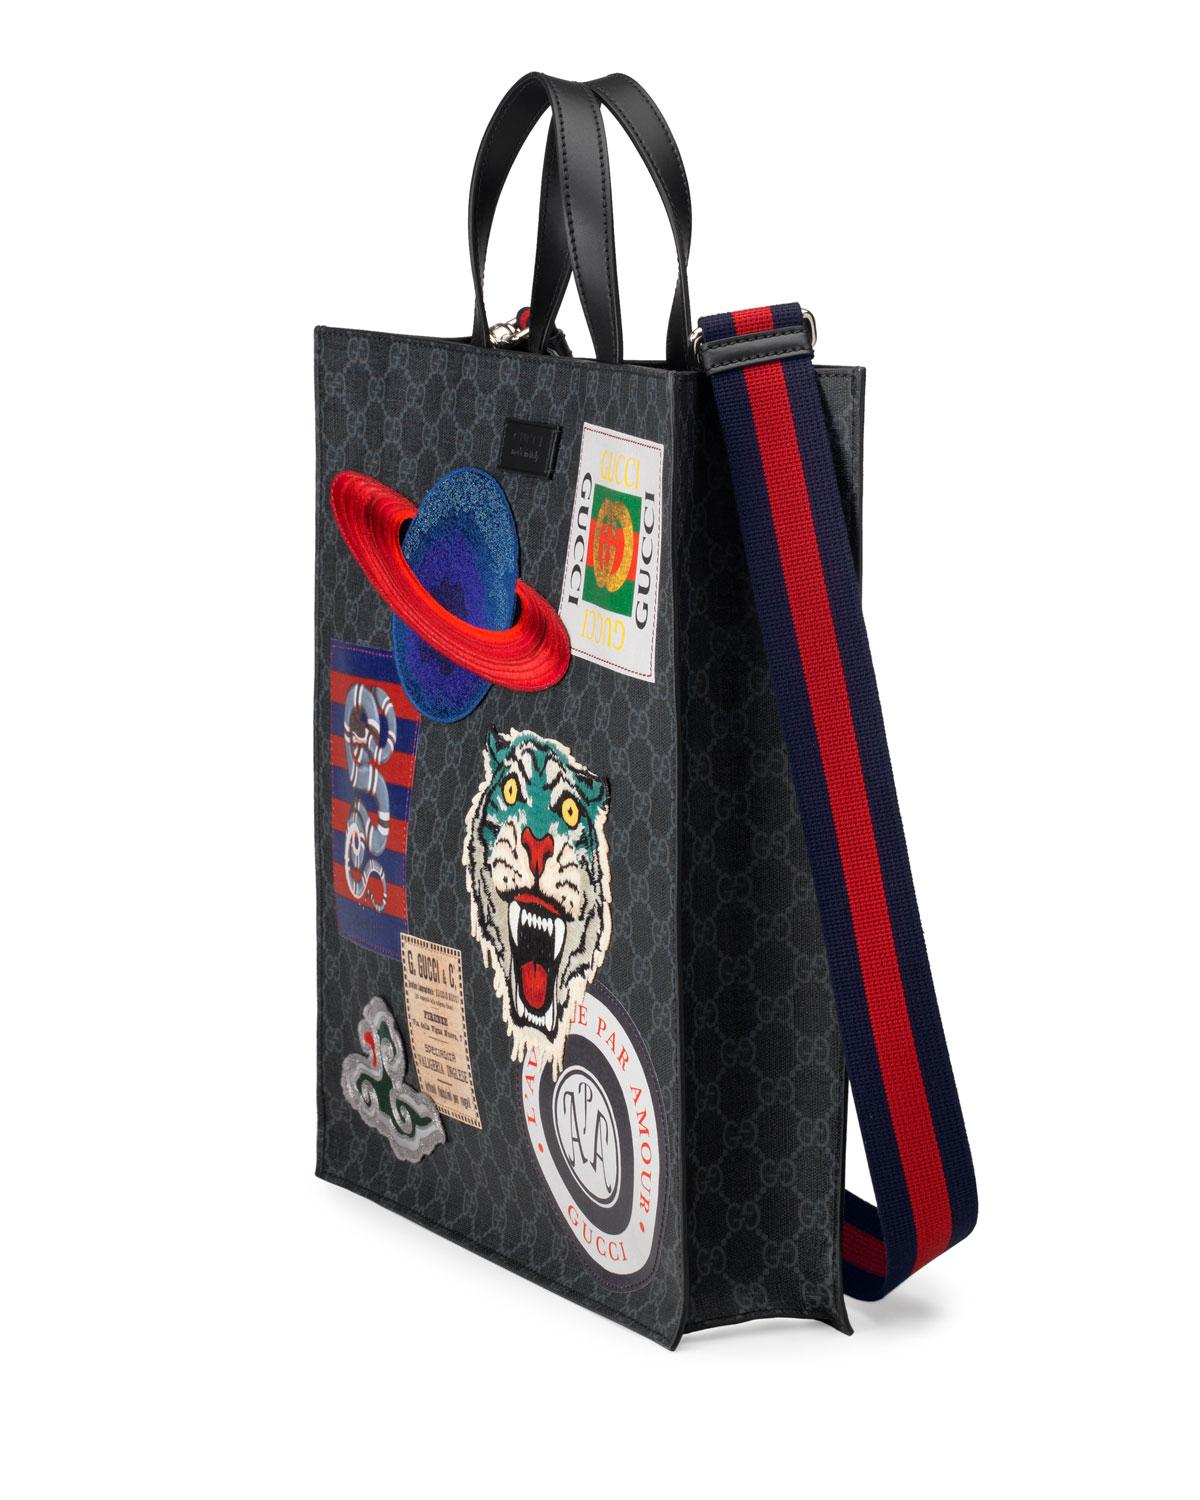 d10b4411117 Gucci Men s GG Supreme Tote Bag With Patches in Black - Lyst